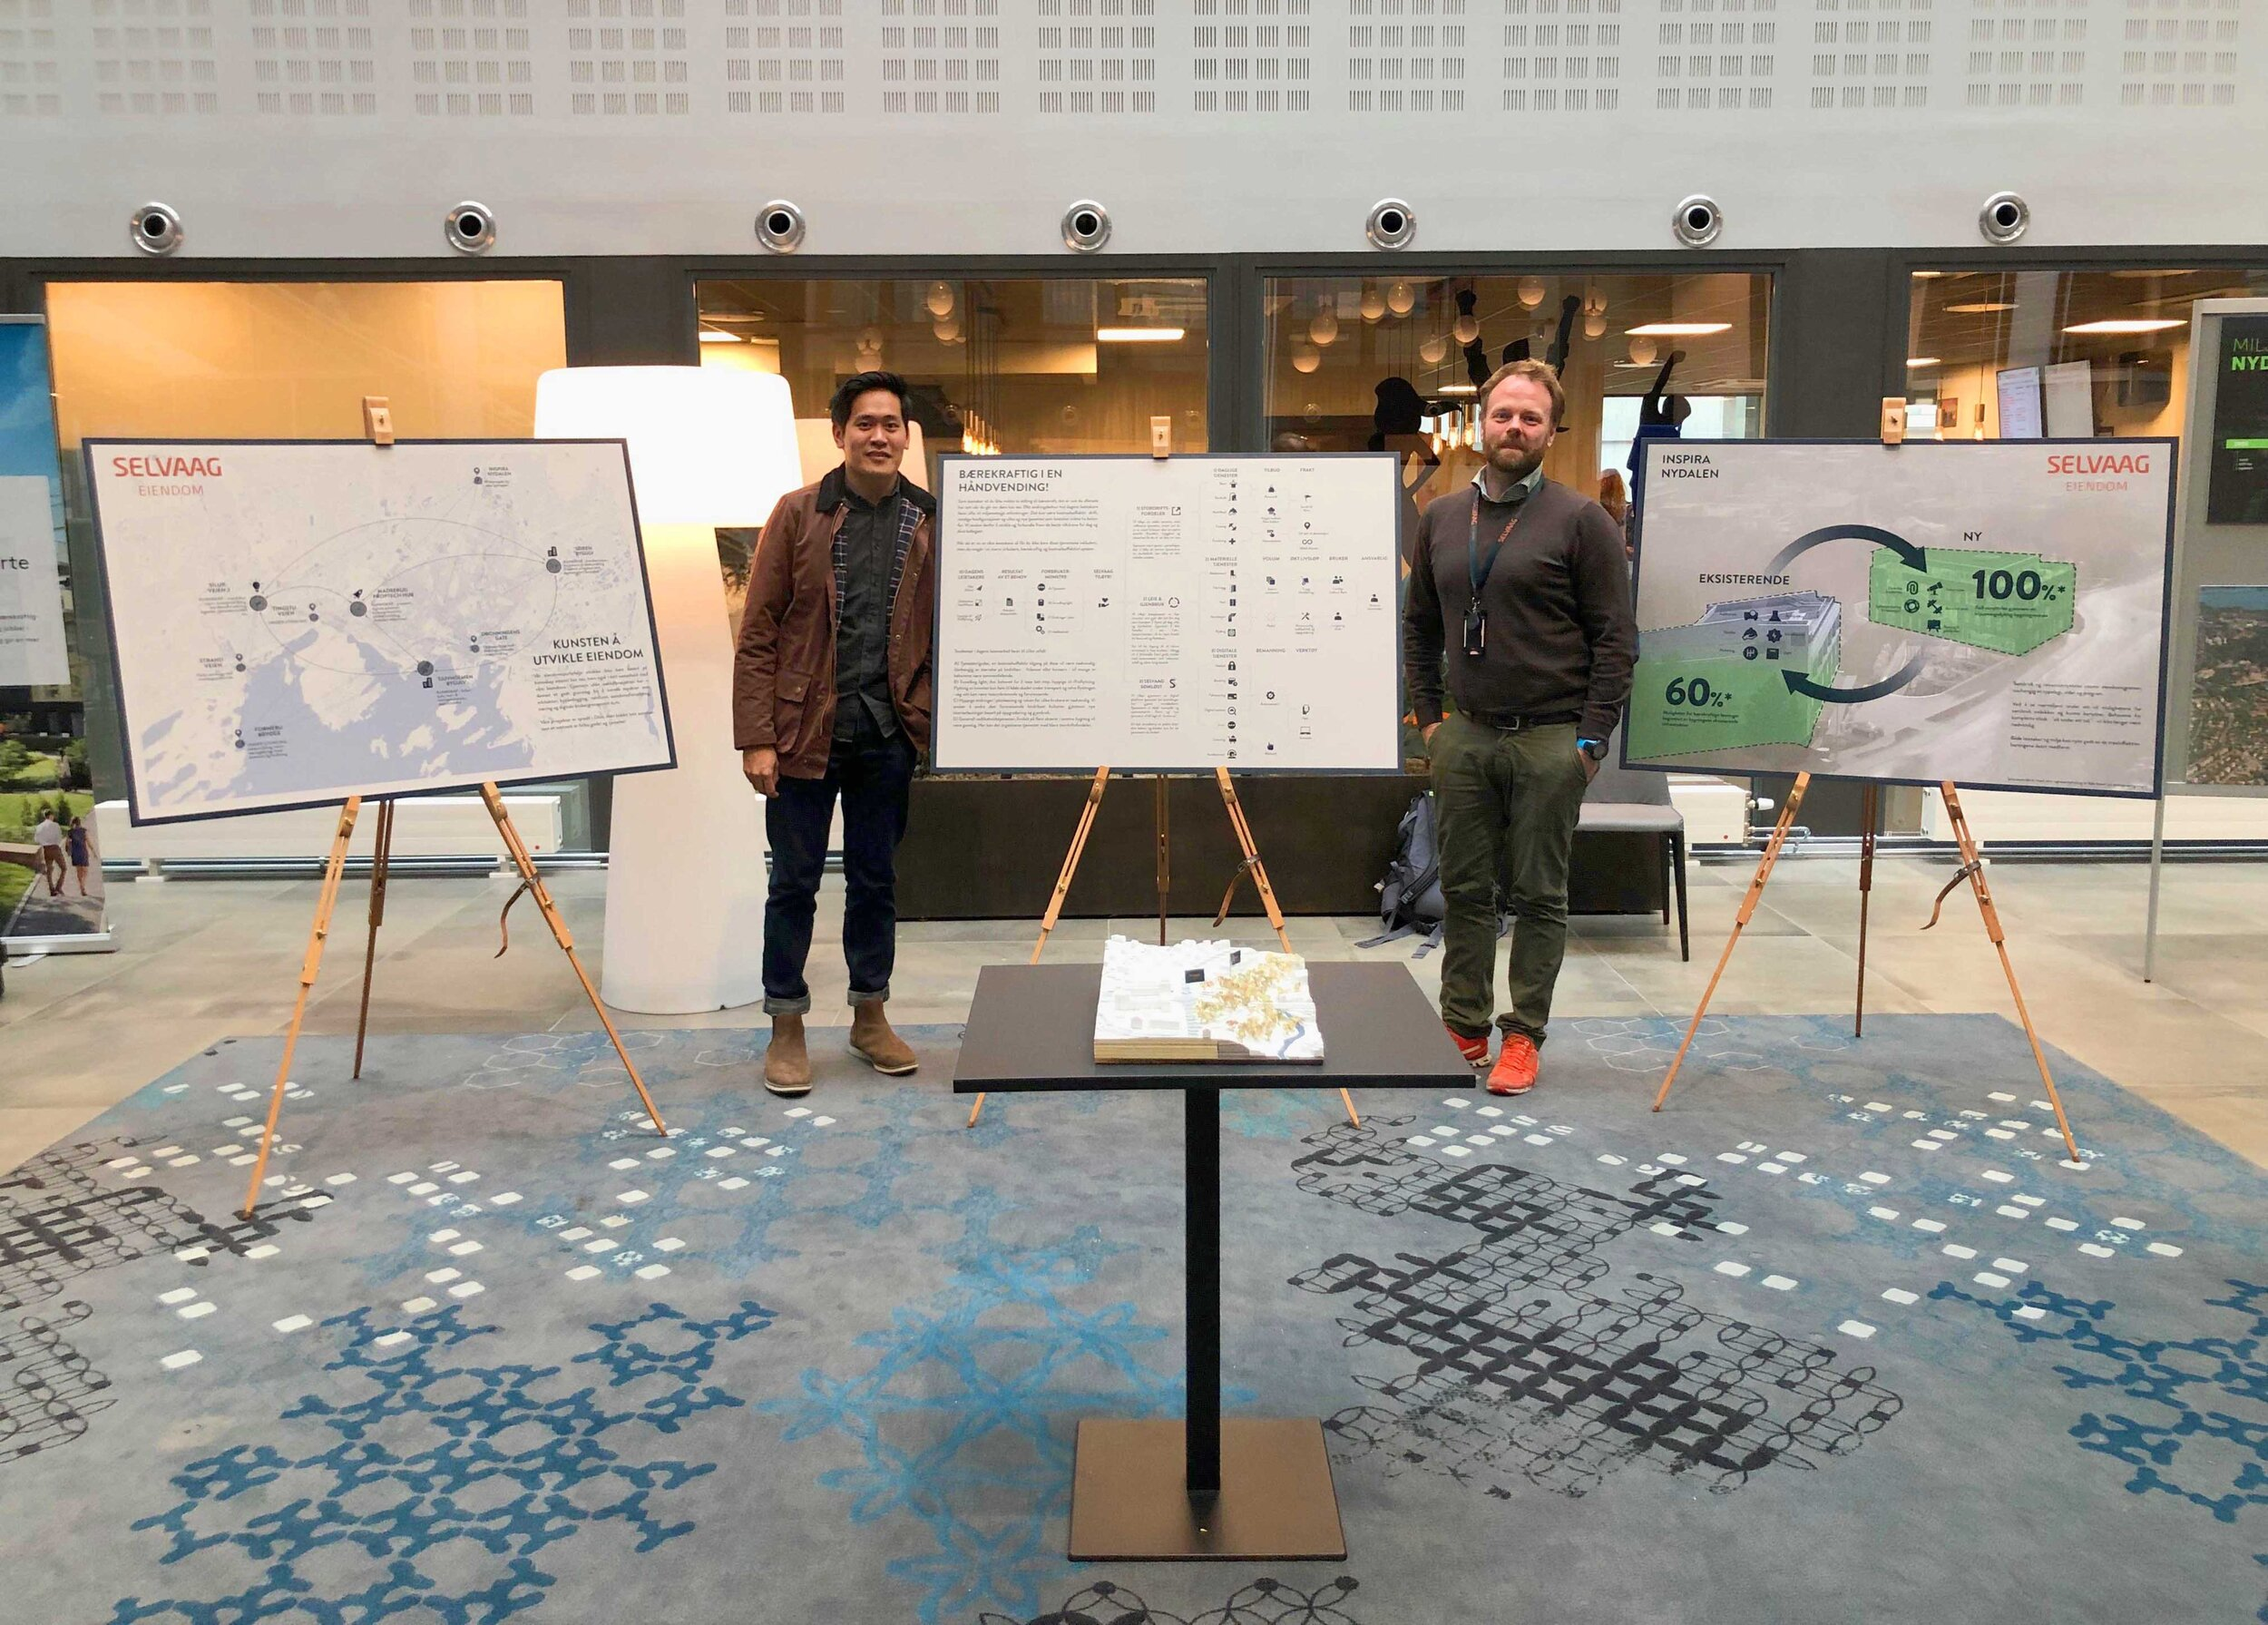 Chief Designer of Selvaag's Exhibition at Bydelsdagene Nydalen! - 14.09.2019 - Avantor H.Q., Nydalen - Tin served as the chief designer of Selvaag's exhibition at Bydelsdagene Nydalen, working under the director of Development Magnus Skallerud (right in the picture), and property developer Emelie Tornberg. The intention was to showcase different property developers practices that underscored the green shift. Instead of showing anything flashy as BREEAM certified buildings, Selvaag chose a more sober representation of their innovations: their everyday practices such as putting pressure on suppliers to step up their game on maintaining ventilation rather than replacing it, proper storage of furnitures for reusing, system walls/doors etc., and even digital systems for smooth booking, ordering catering, paying bills etc. The point was to showcase the actions that a property developer could do which is leaner management of their furnish or assets in their properties, rather than buying state-of-the-art technological facades or whatever.Some of the presenters present that day was Elin Børrud, Per Gunnar Røe, Gro Sandkjær Hanssen, Øystein Thorup etc. Other property developers that exhibited their work that day was Avantor, OBOS, Veidekke, Norwegian Property and Storebrand Eiendom.